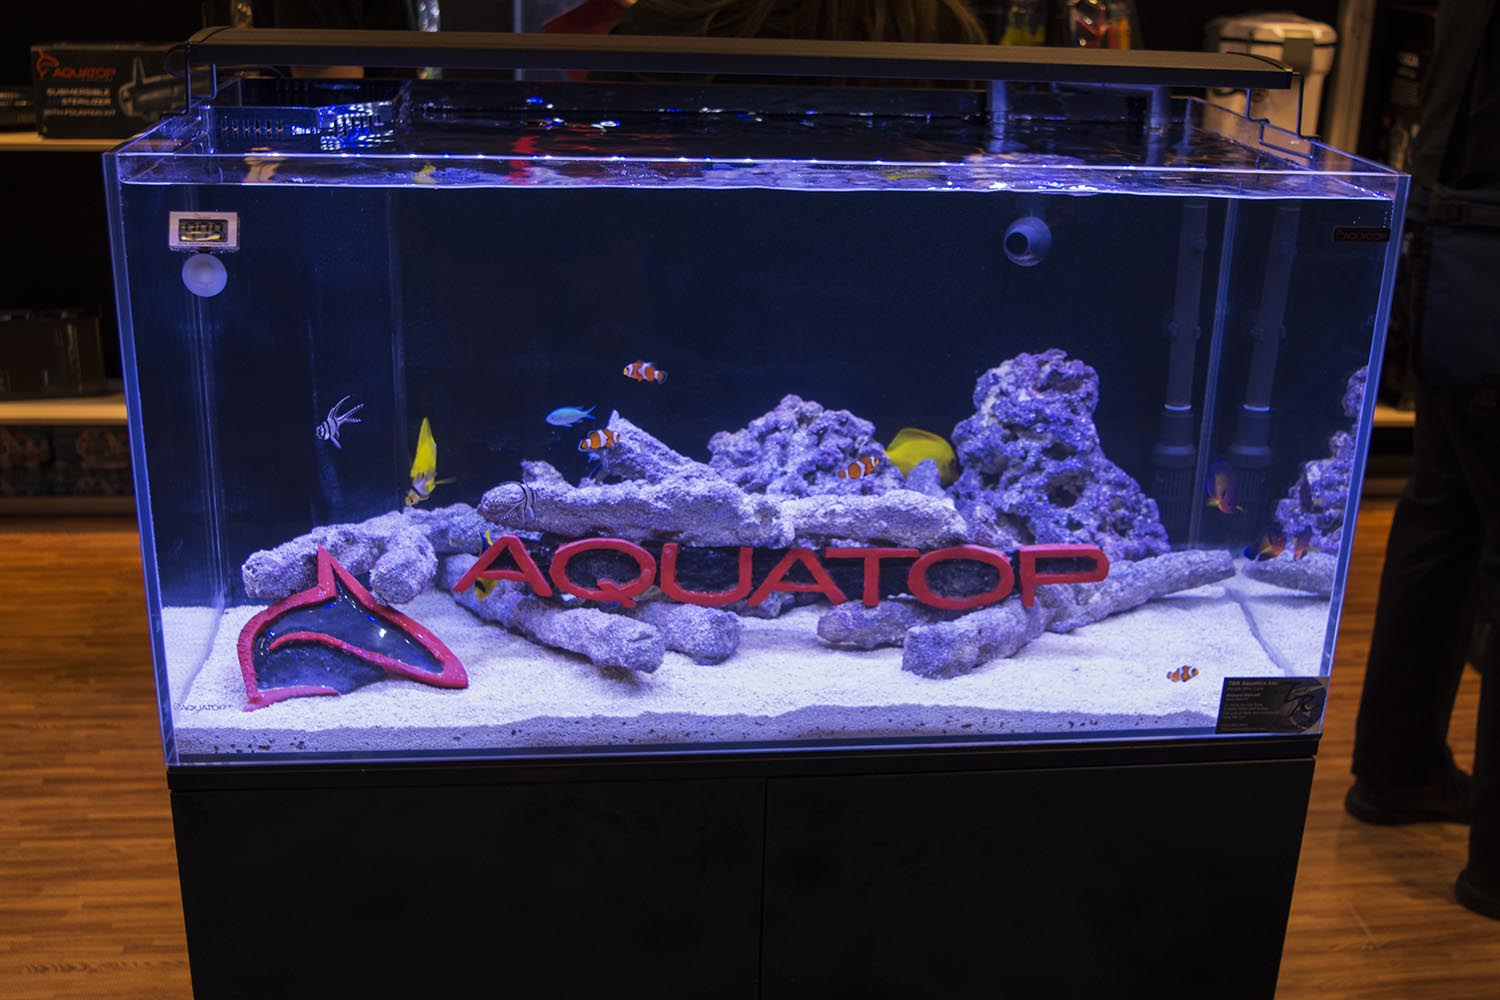 Aquatop's booth prominently featured their new Recife all-in-one reef aquarium setup.